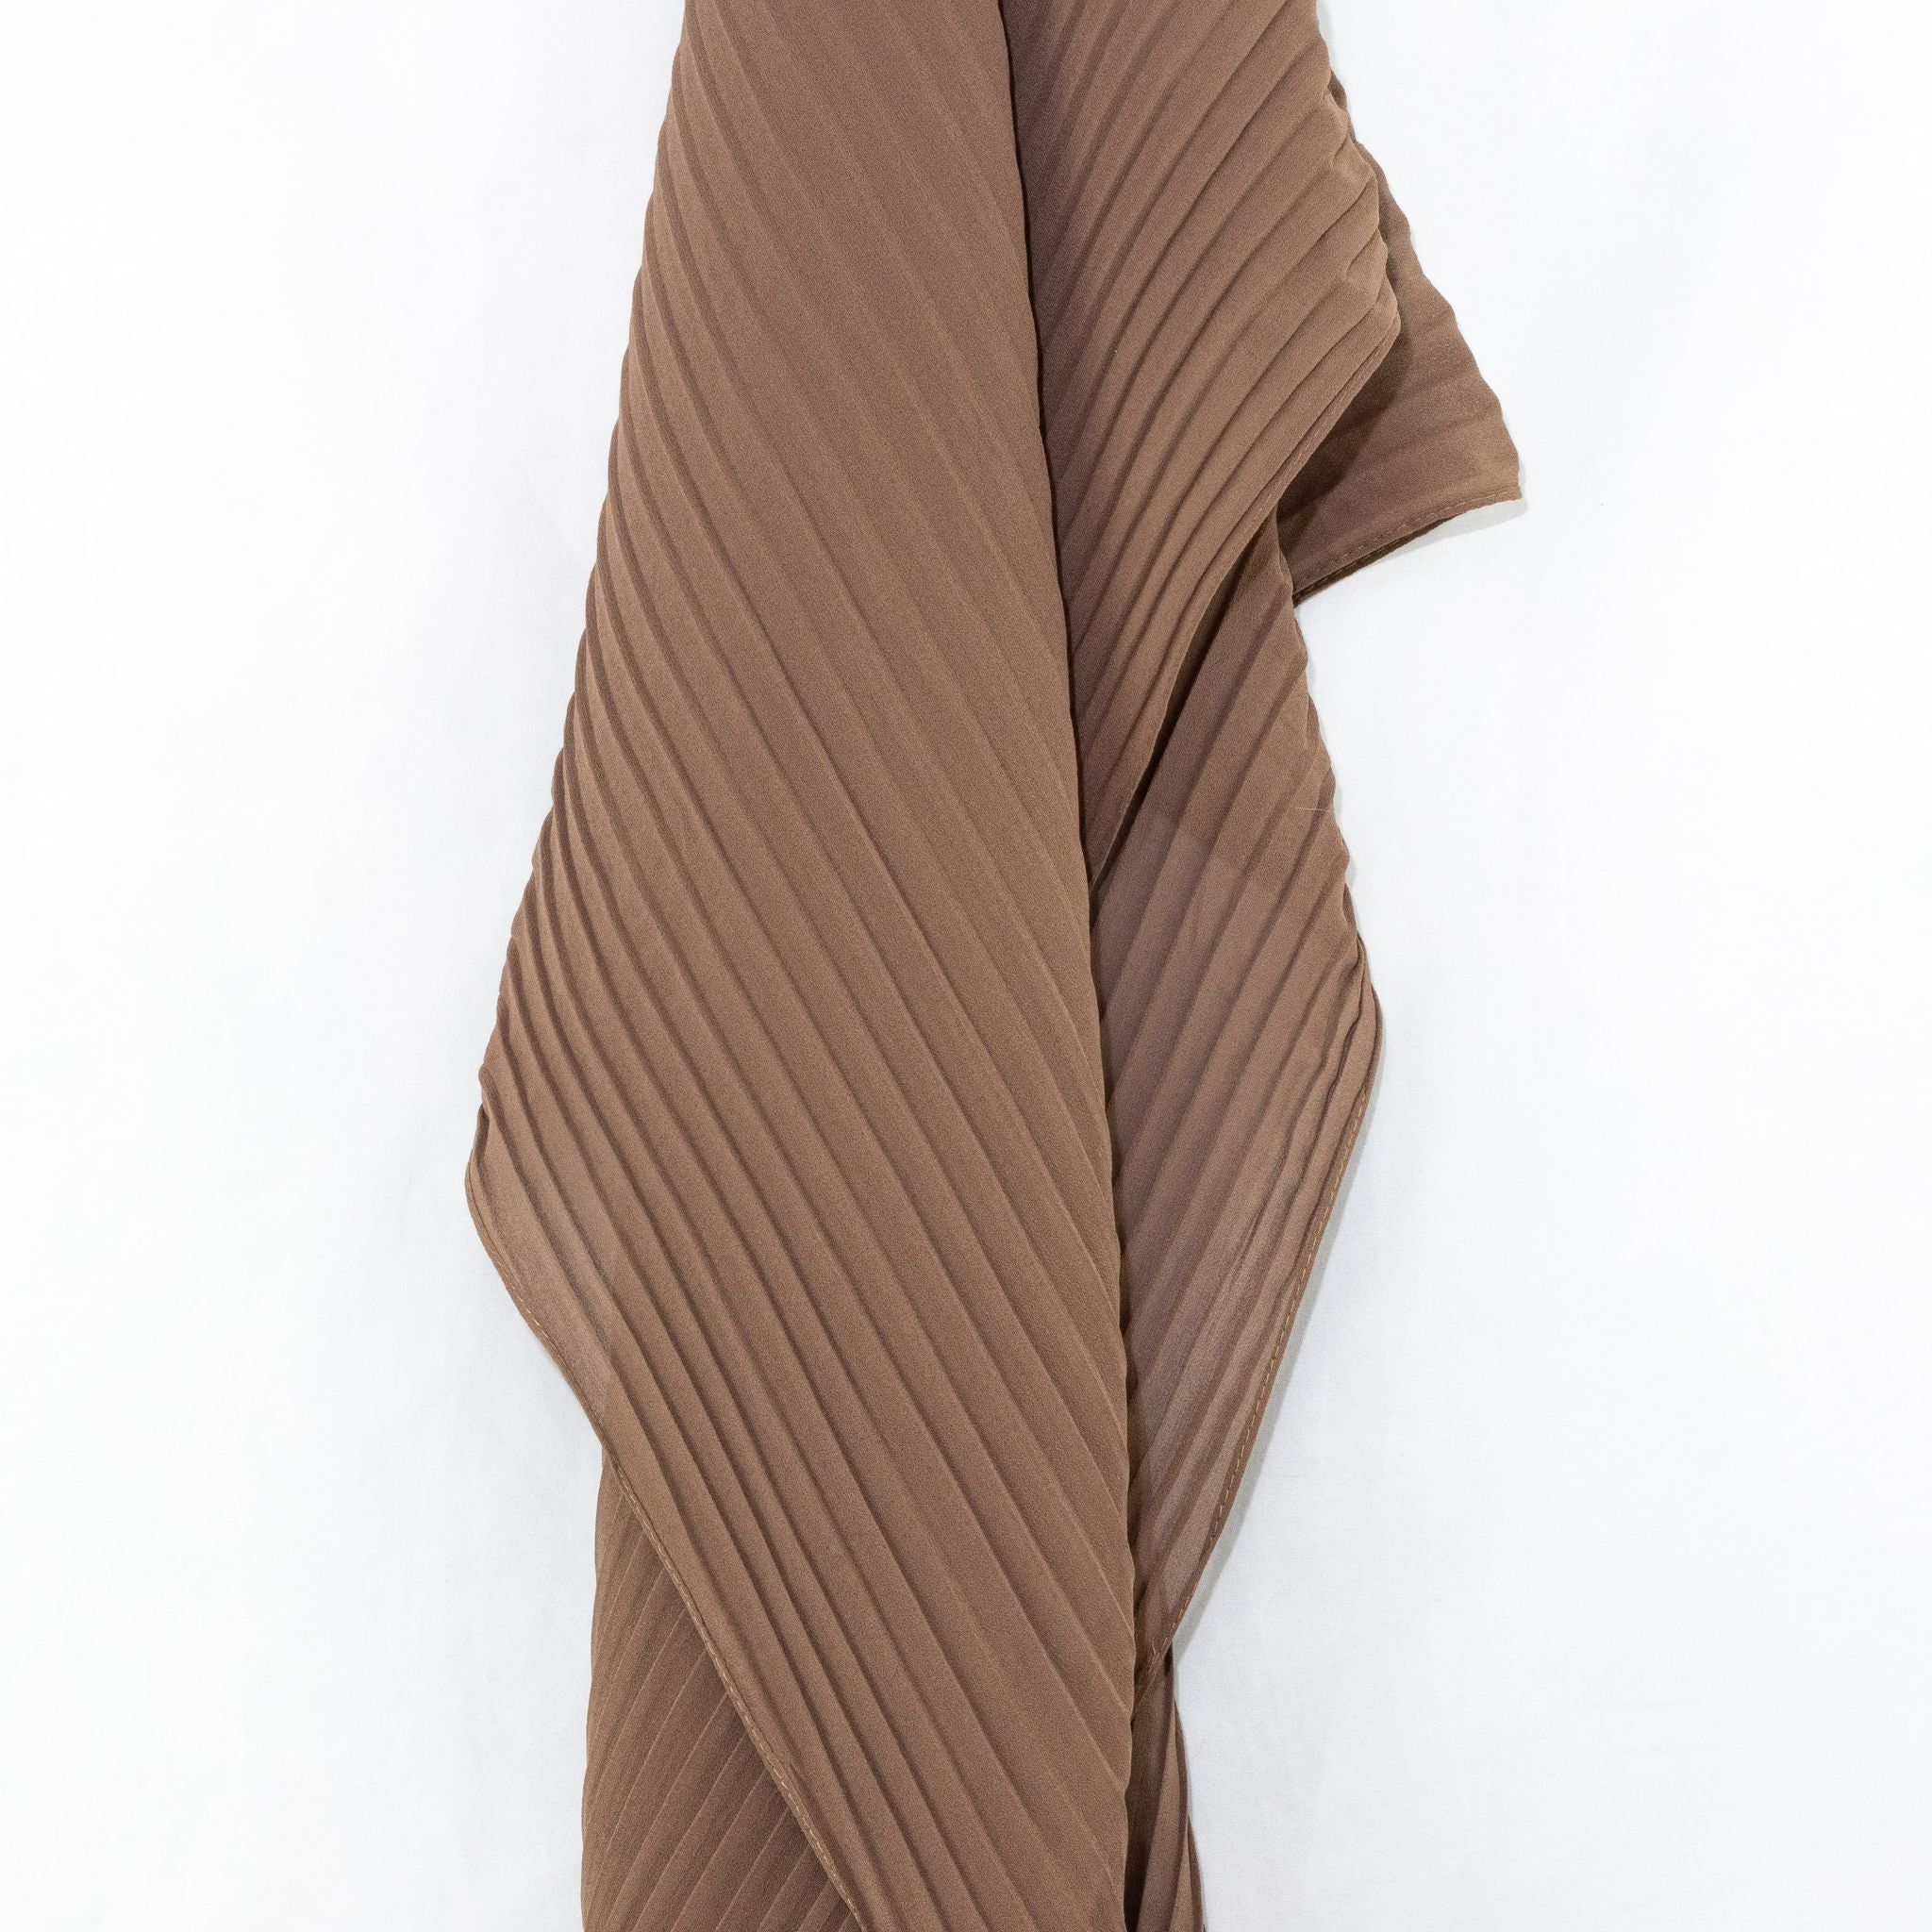 Nutmeg Tan Pleated Chiffon Hijab